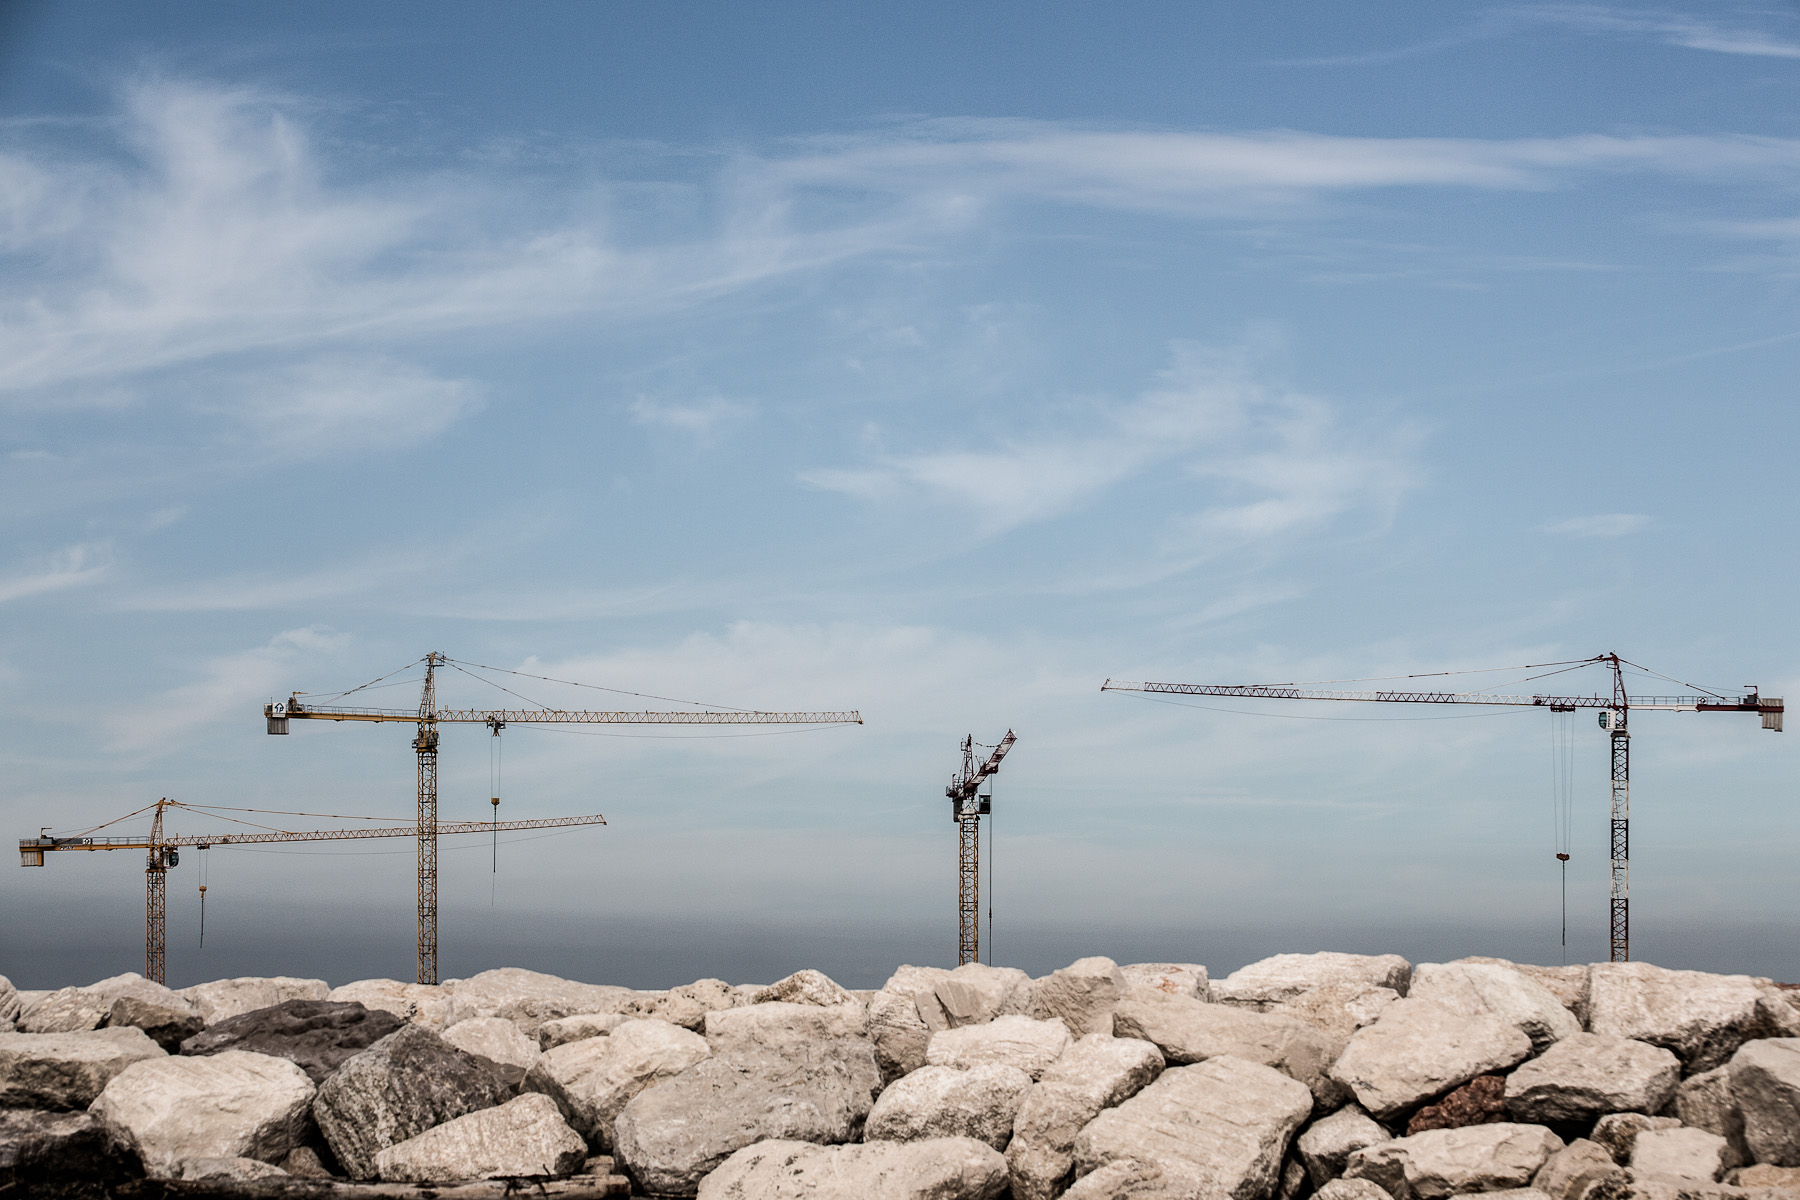 Construction cranes of the MOSE project are seen behind a wavebreak at Chioggia inlet on September 28, 2012. All inlets have been reinforced years ago.